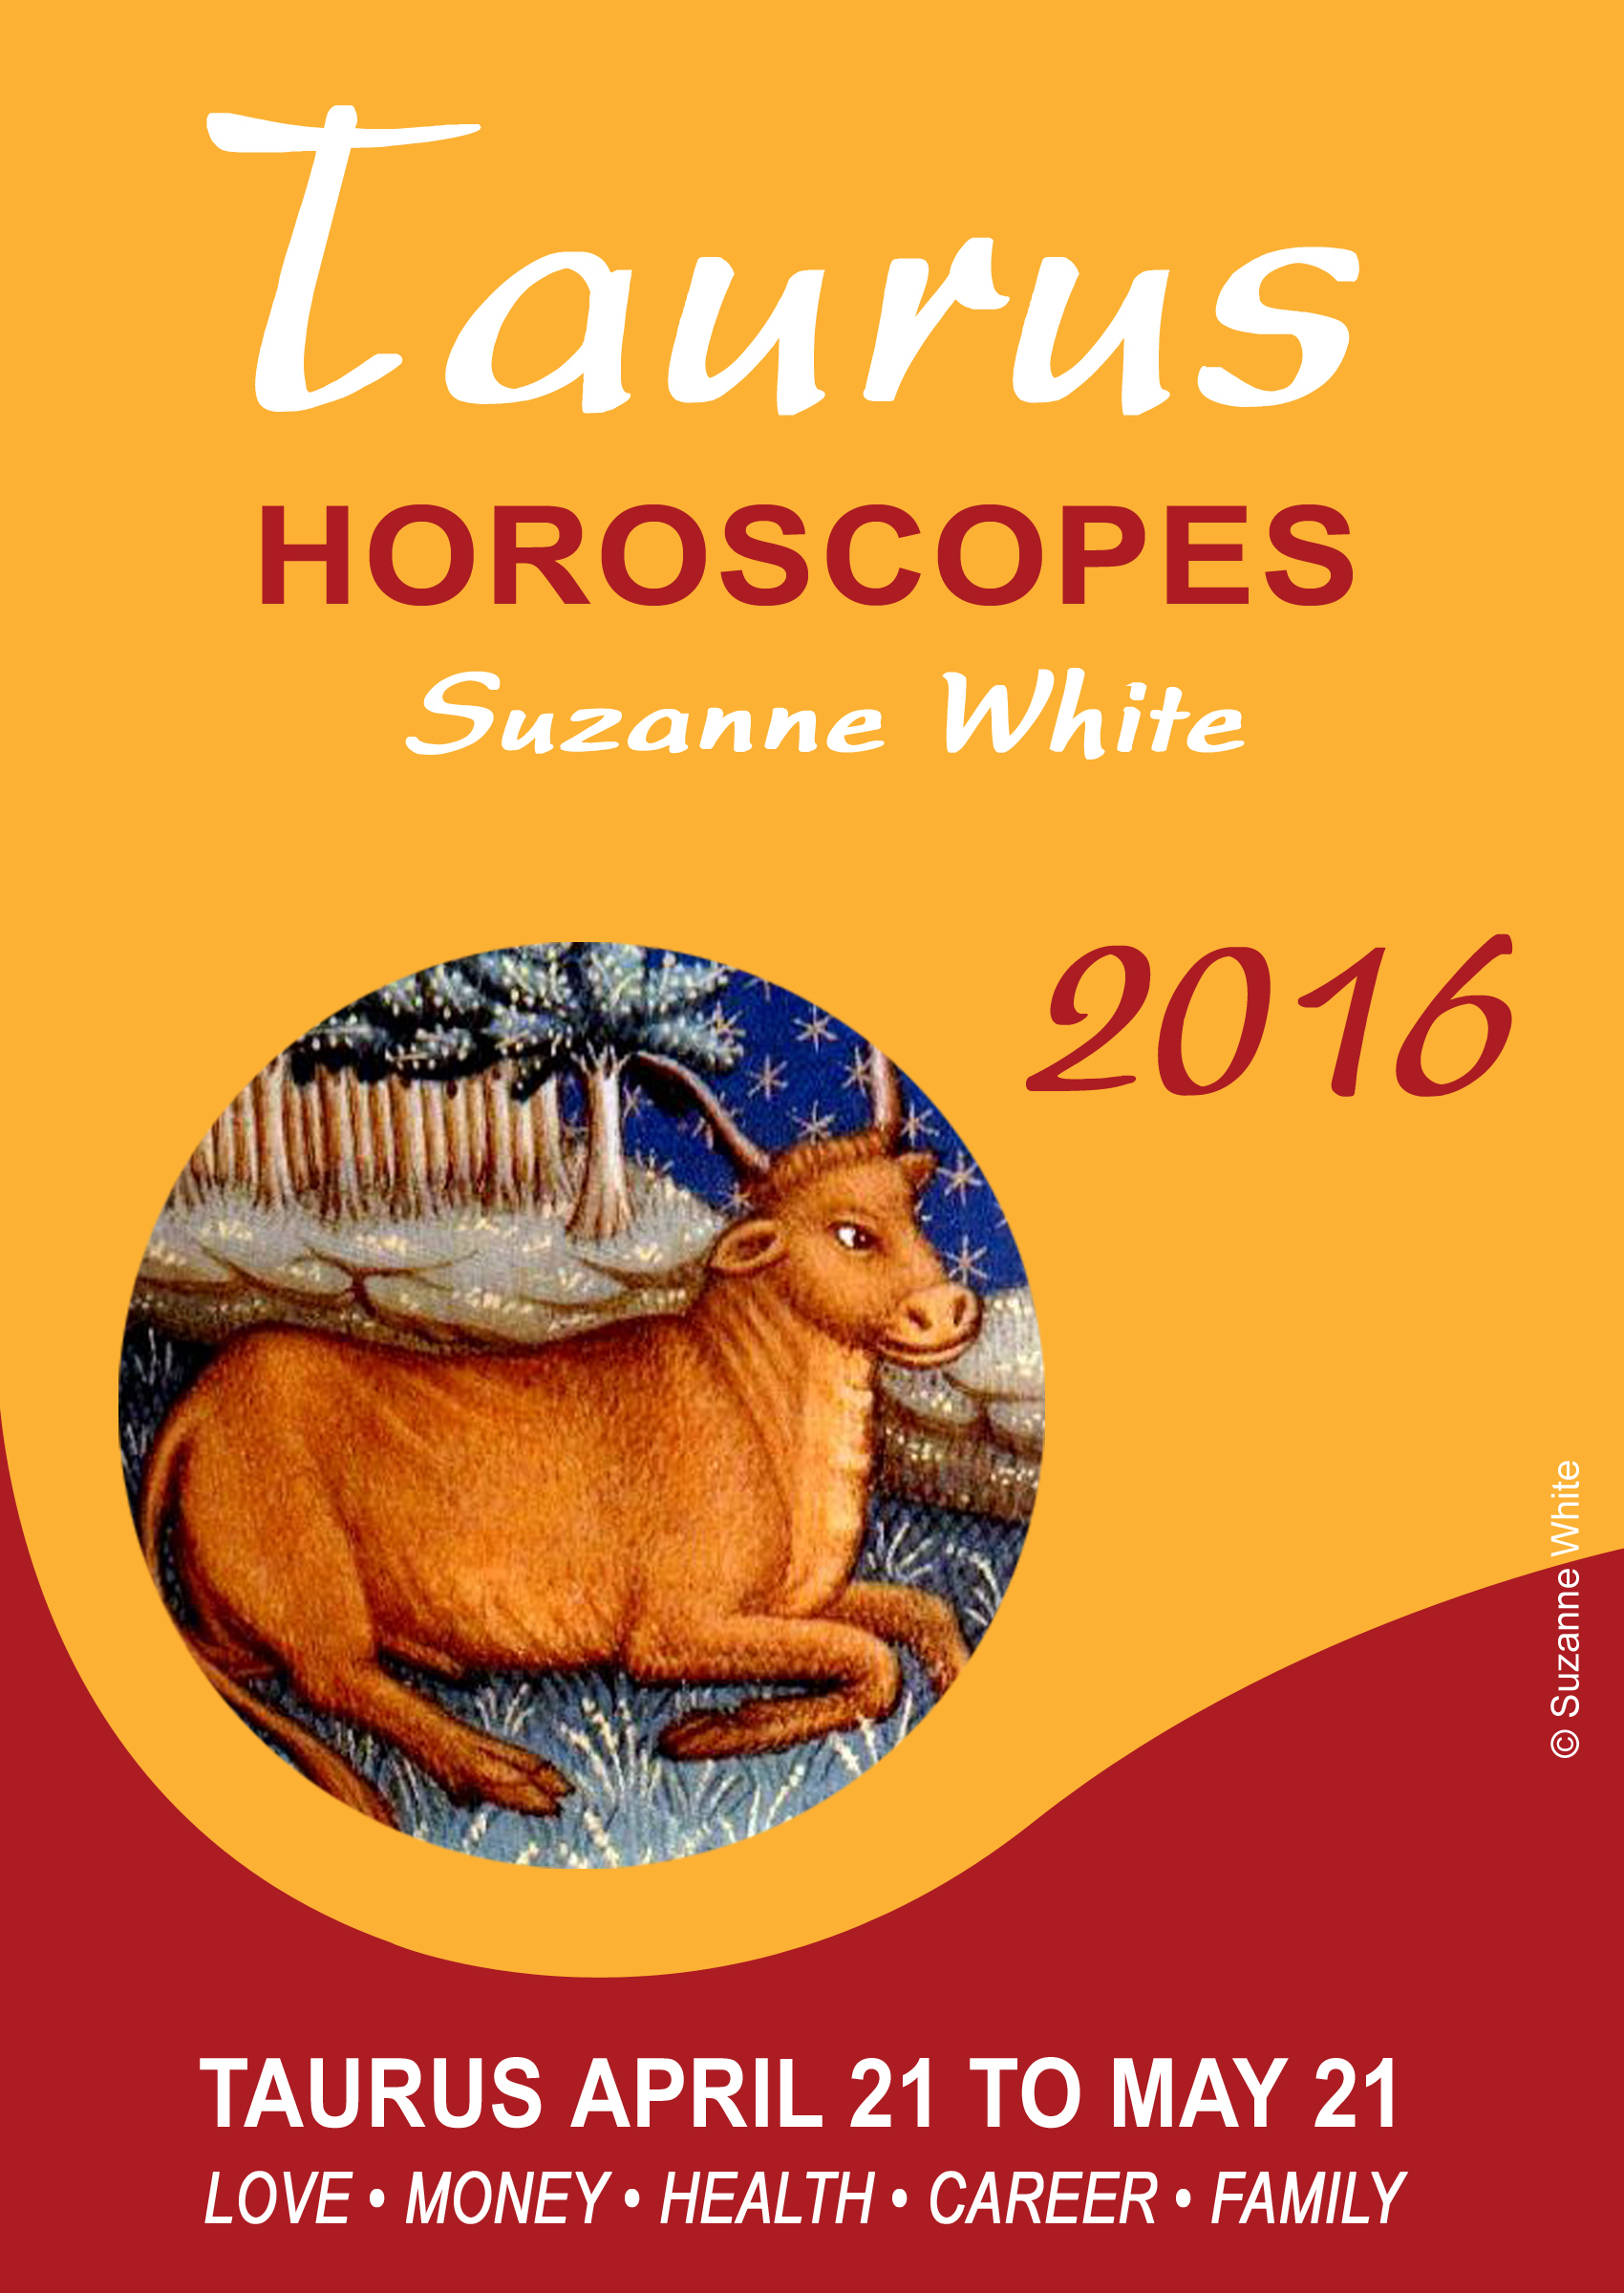 Taurus Horoscopes 2016 Suzanne White Suzanne White